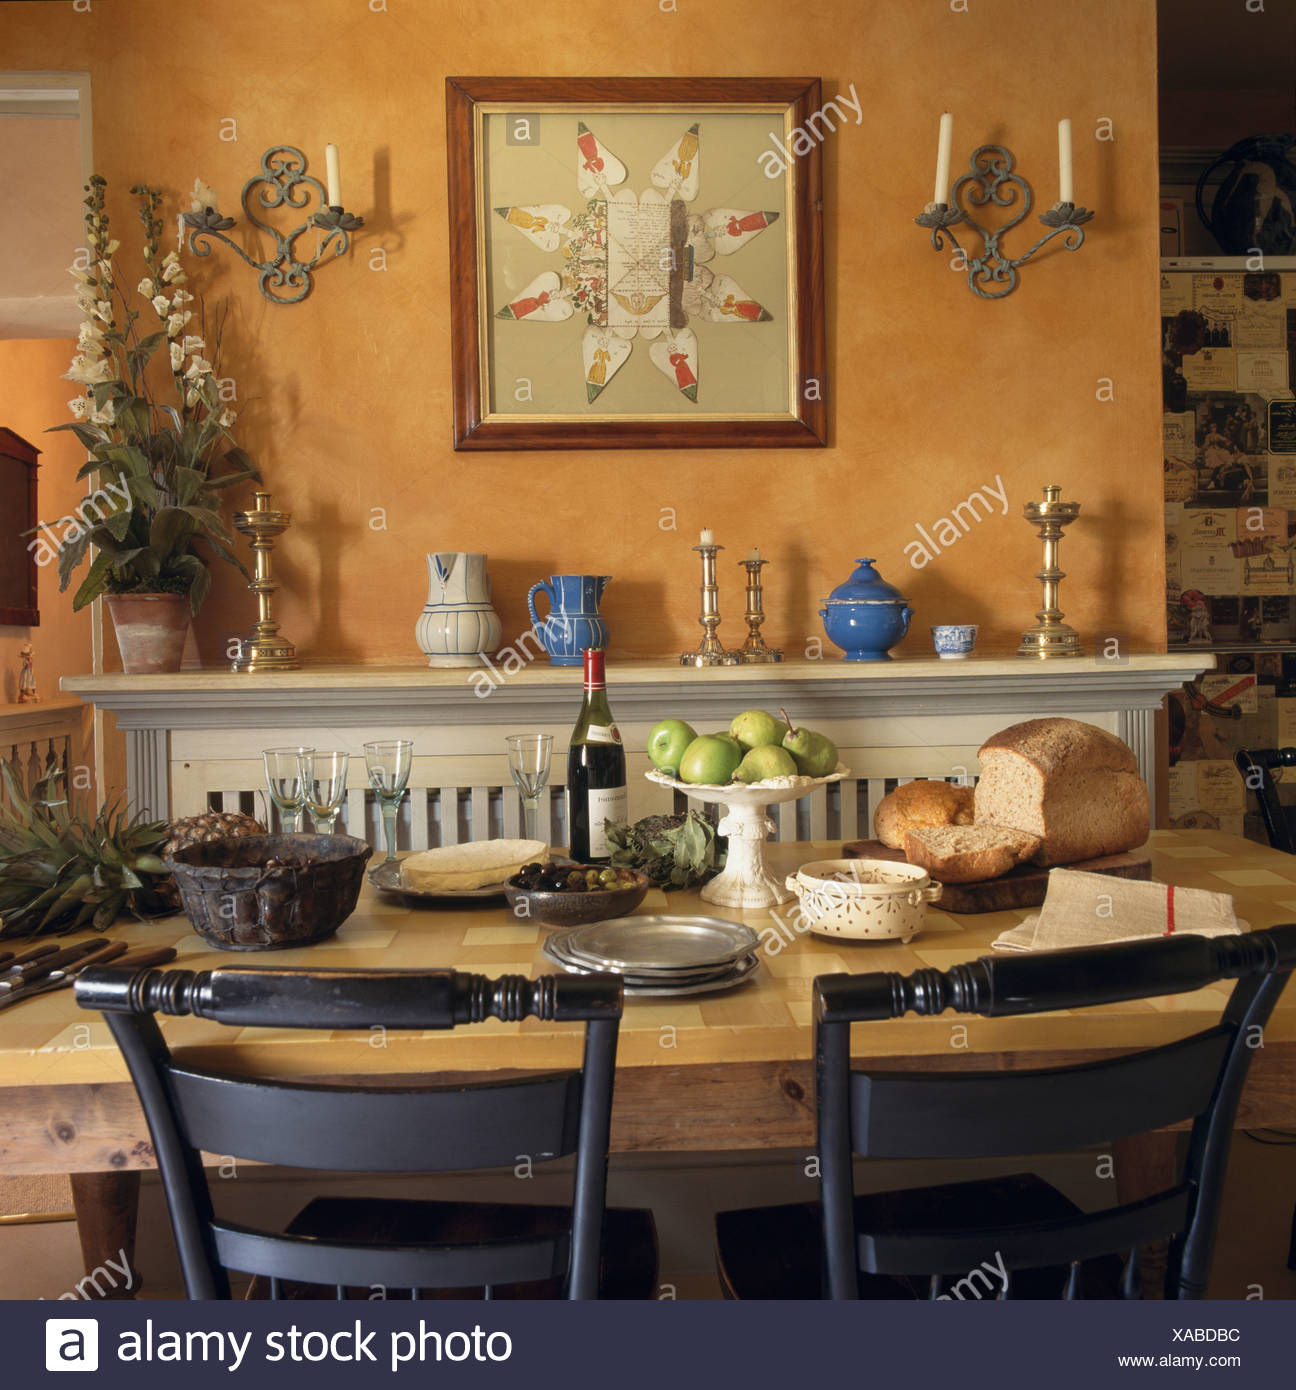 Interiors traditional dining rooms pictures stock photos interiors large picture above fireplace in traditional ochre colored dining room with table set for lunch dzzzfo